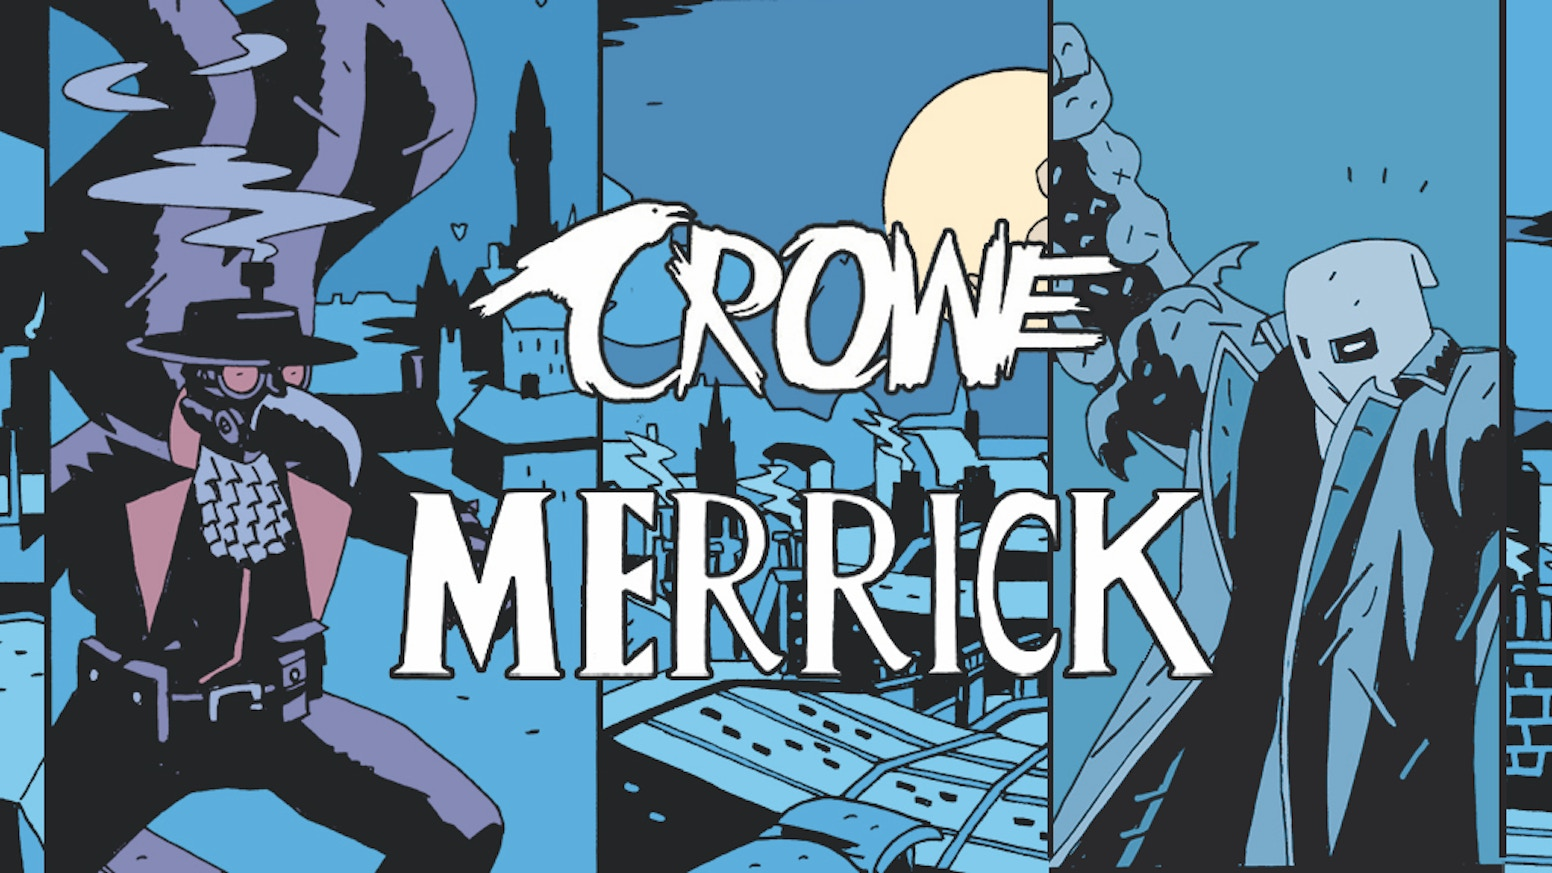 Merrick & Dr Crowe both return to Kickstarter, together for the first time in a rip-roaring Victorian, pulp cross-over adventure!